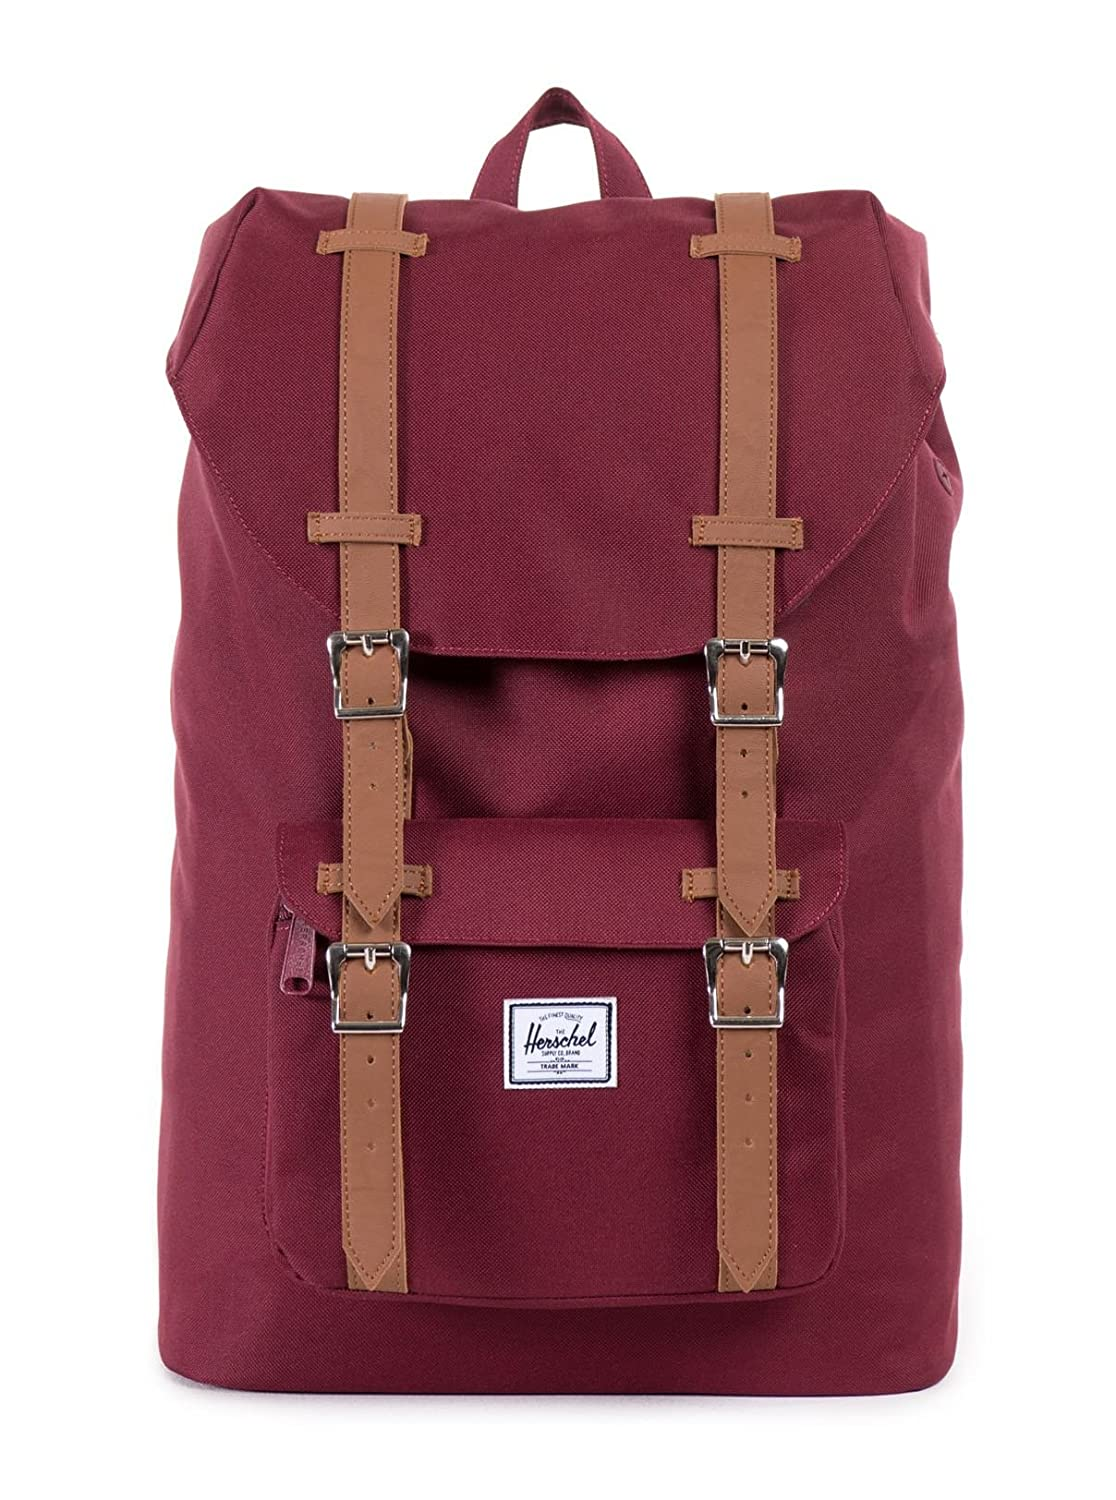 Herschel Supply Company Zaino Casual 10020-00746-OS, Multicolore